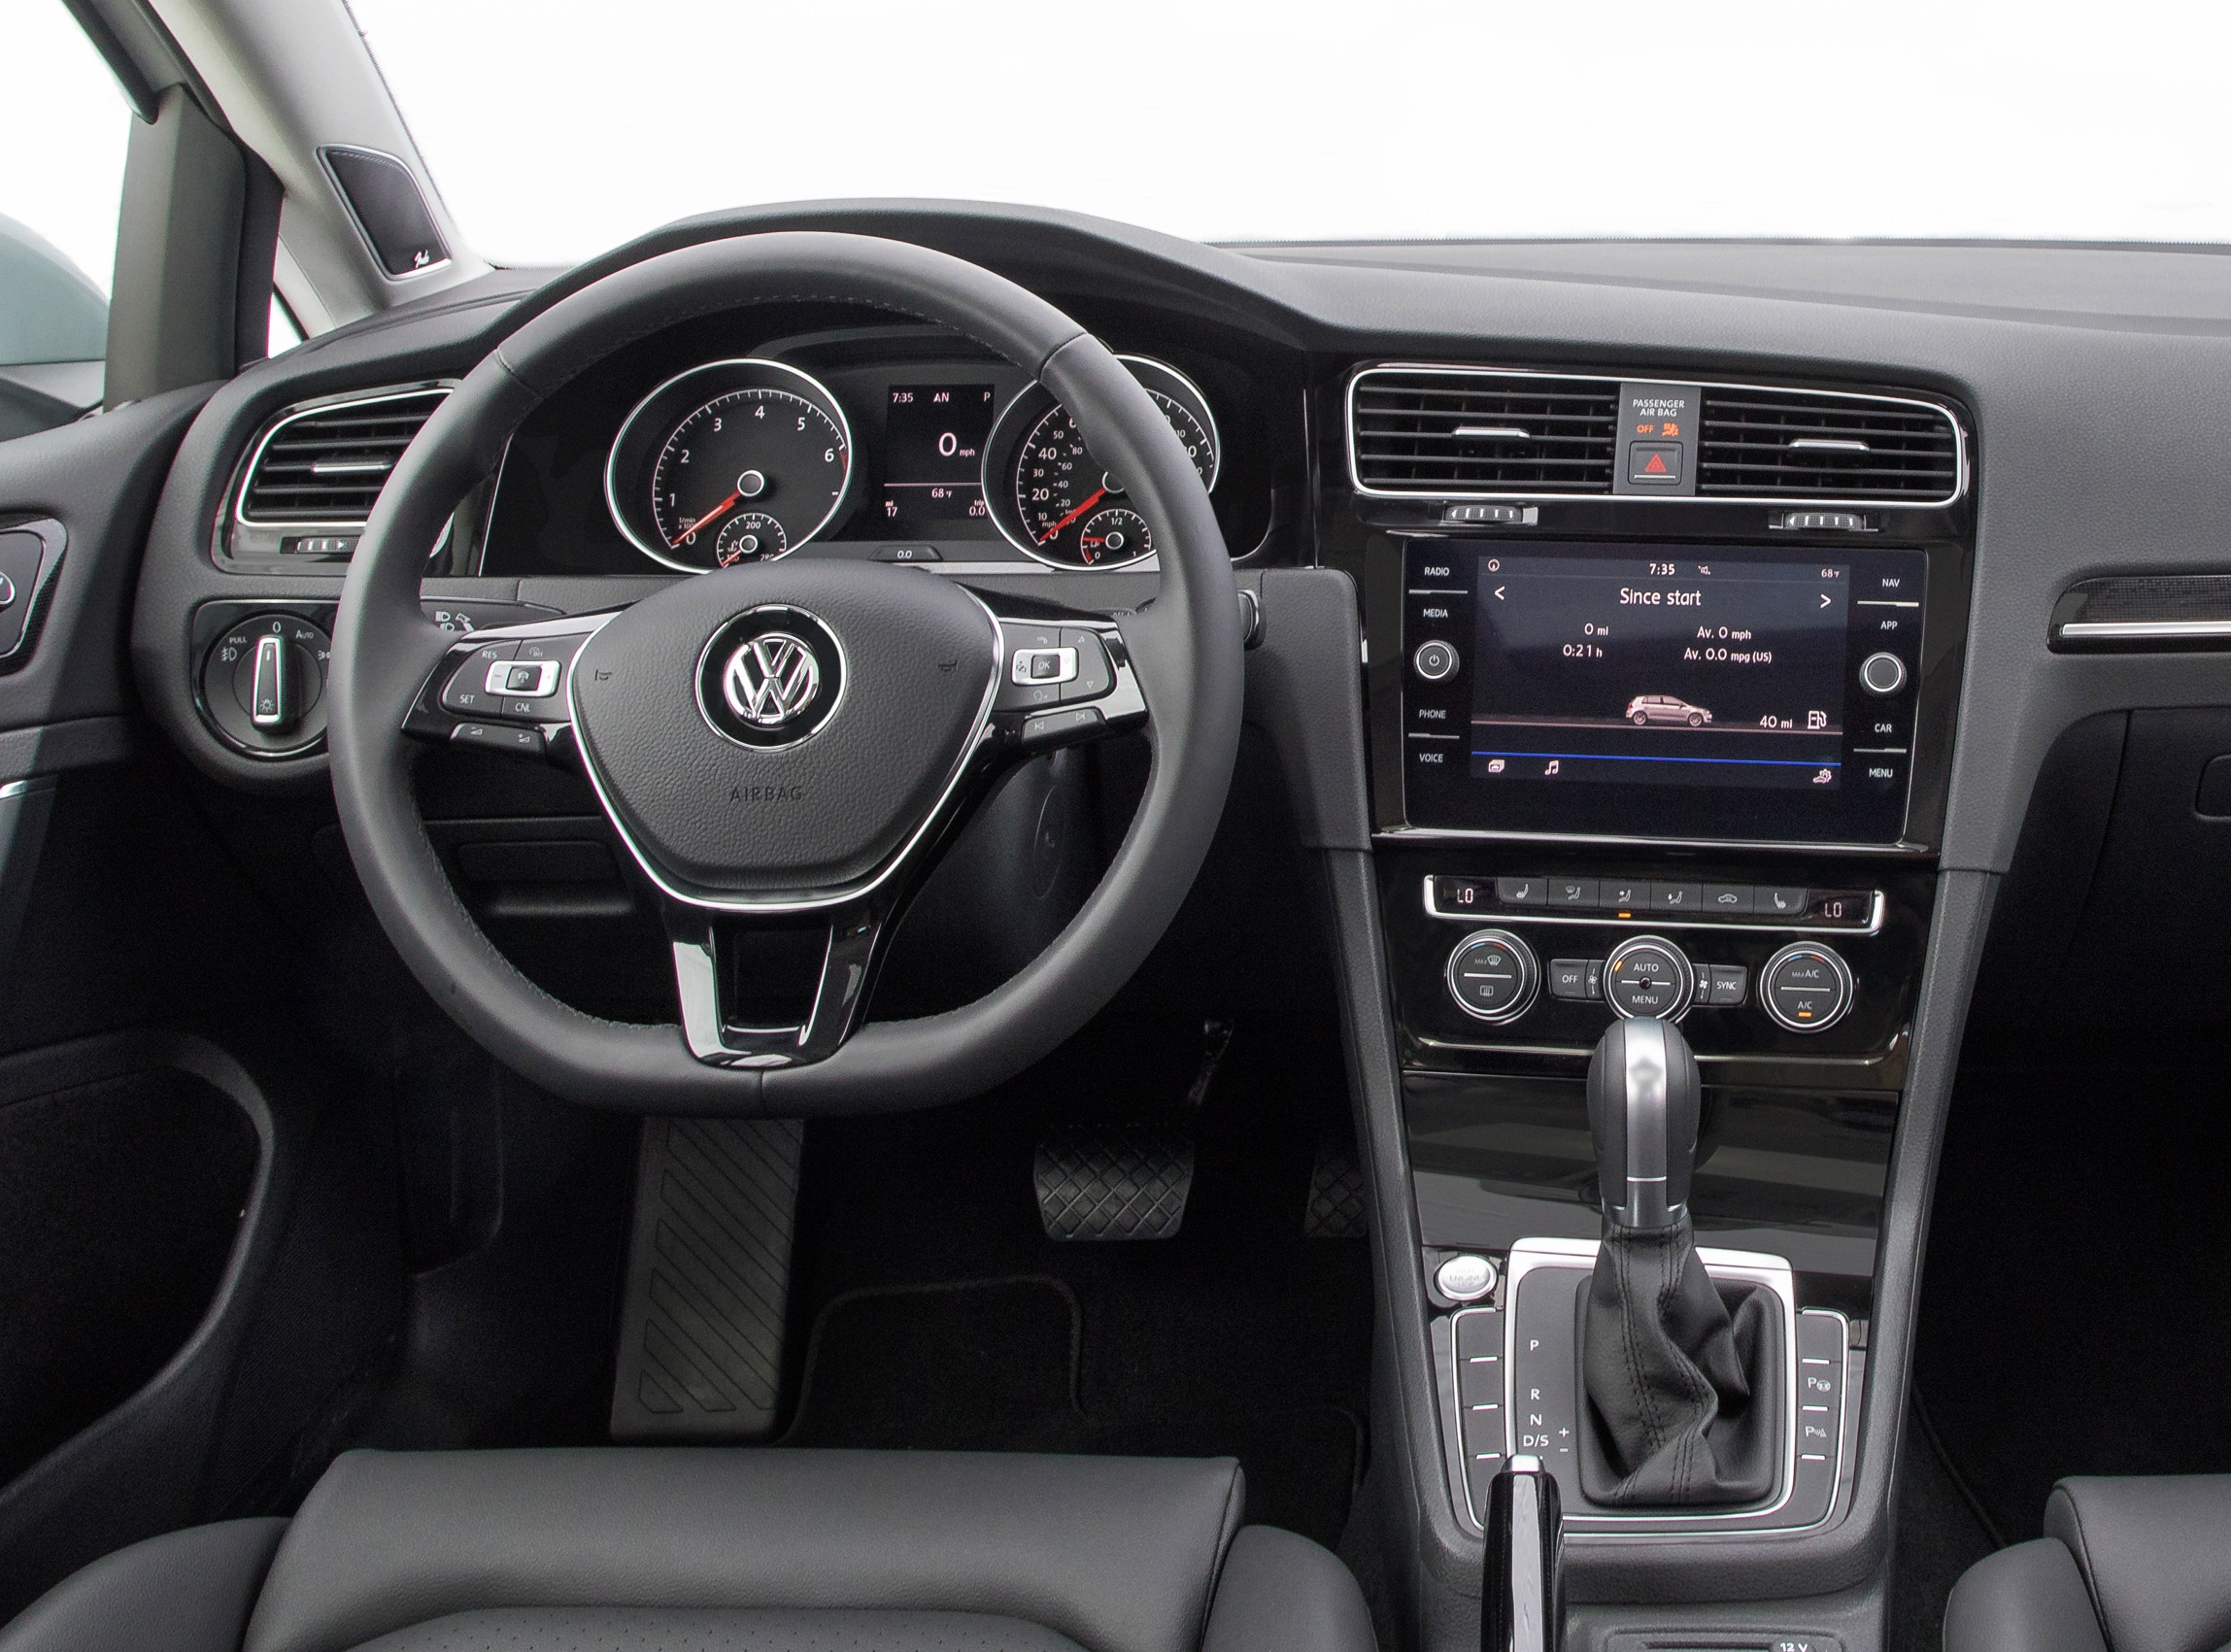 paso white metallic composite gold suv research large tiguan el volkswagen groovecar sel ends